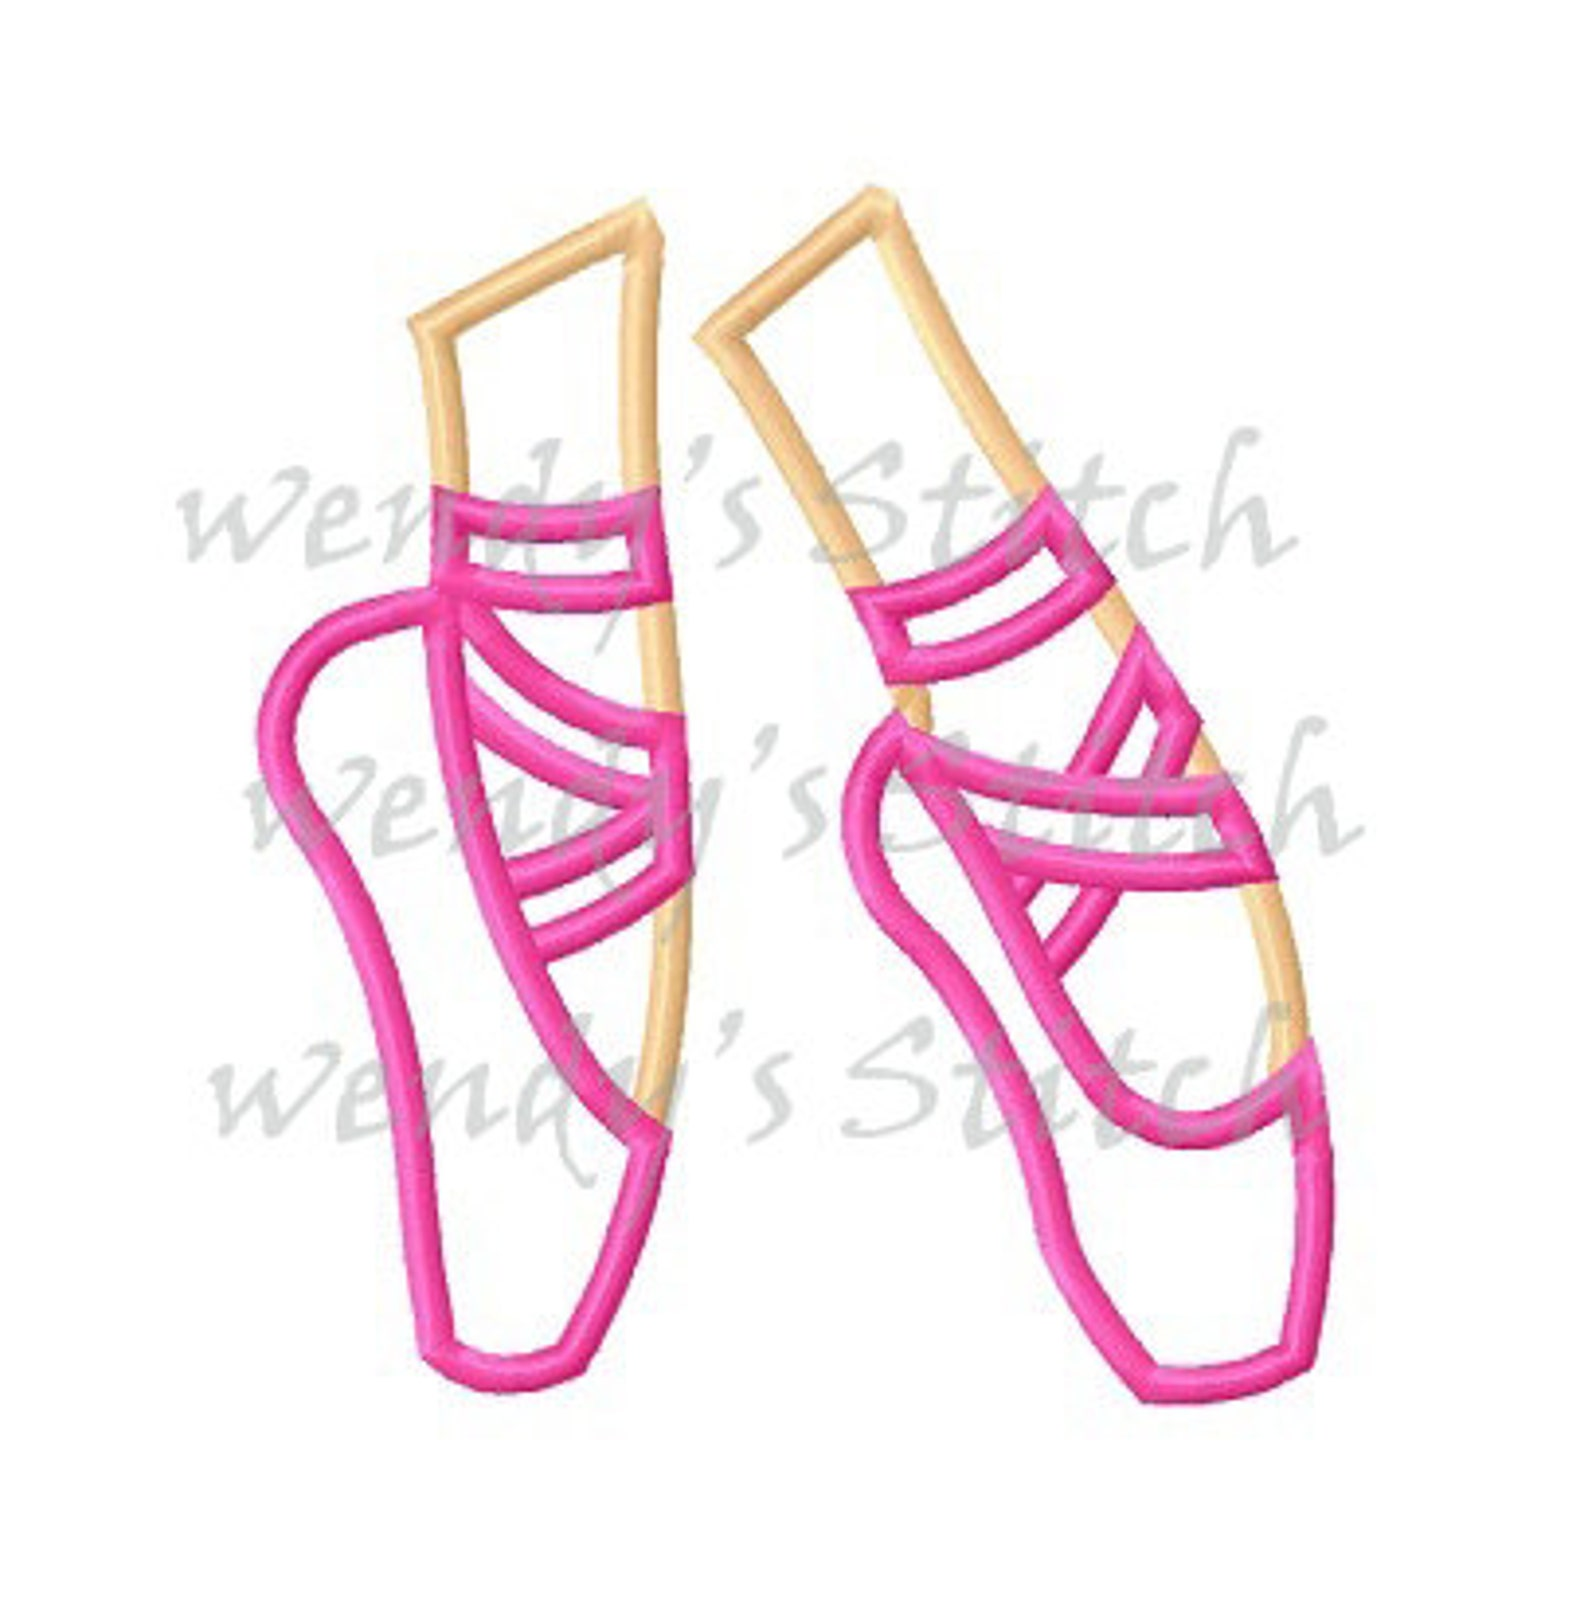 ballerina shoes ballet applique machine emboridery design digital pattern